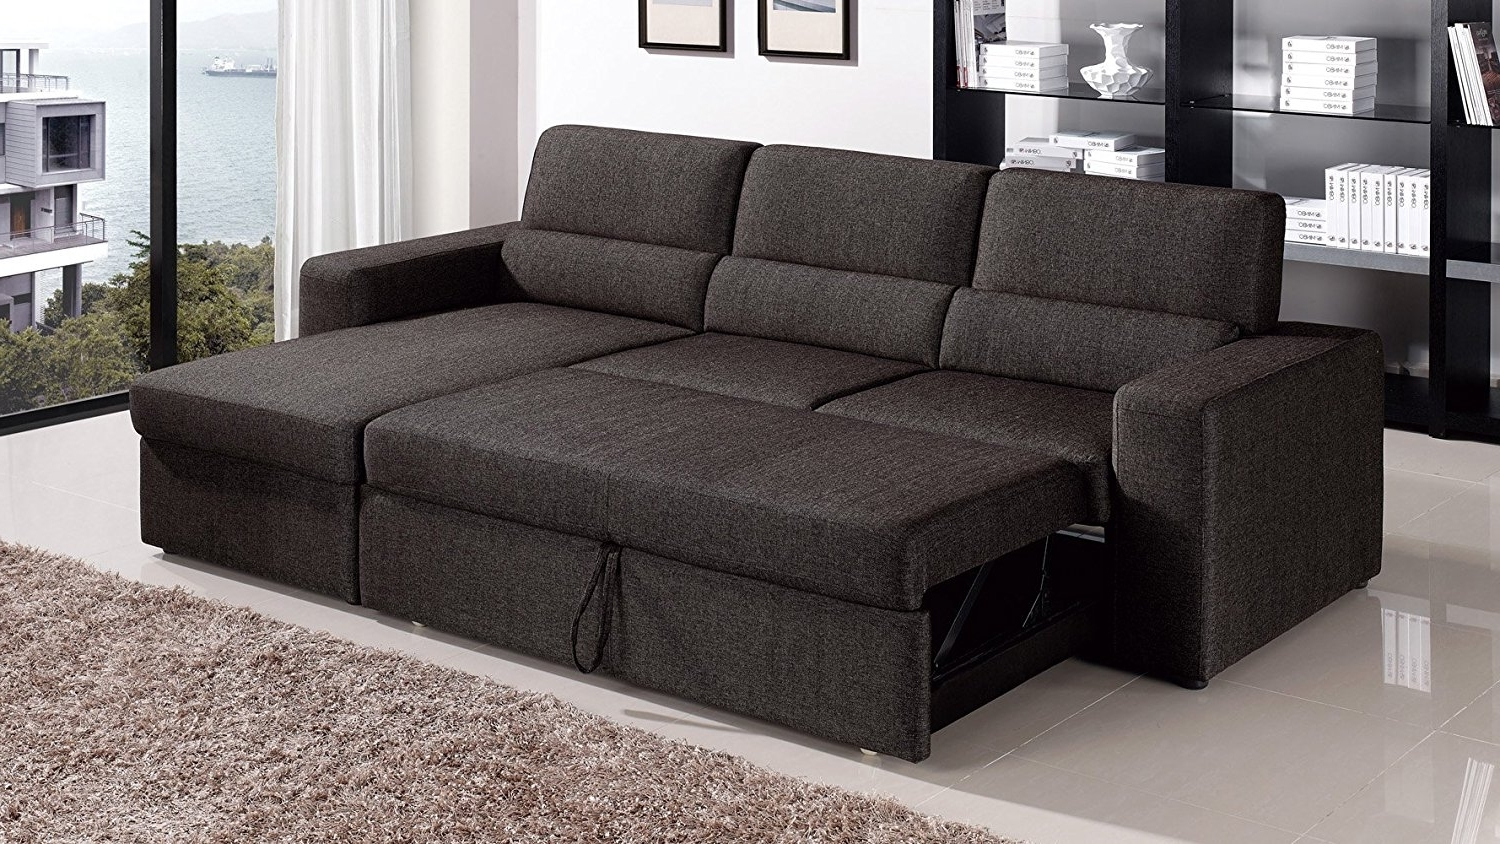 2017 Sleeper Sofa Sectionals With Chaise Regarding Amazon: Black/brown Clubber Sleeper Sectional Sofa – Right (View 1 of 15)